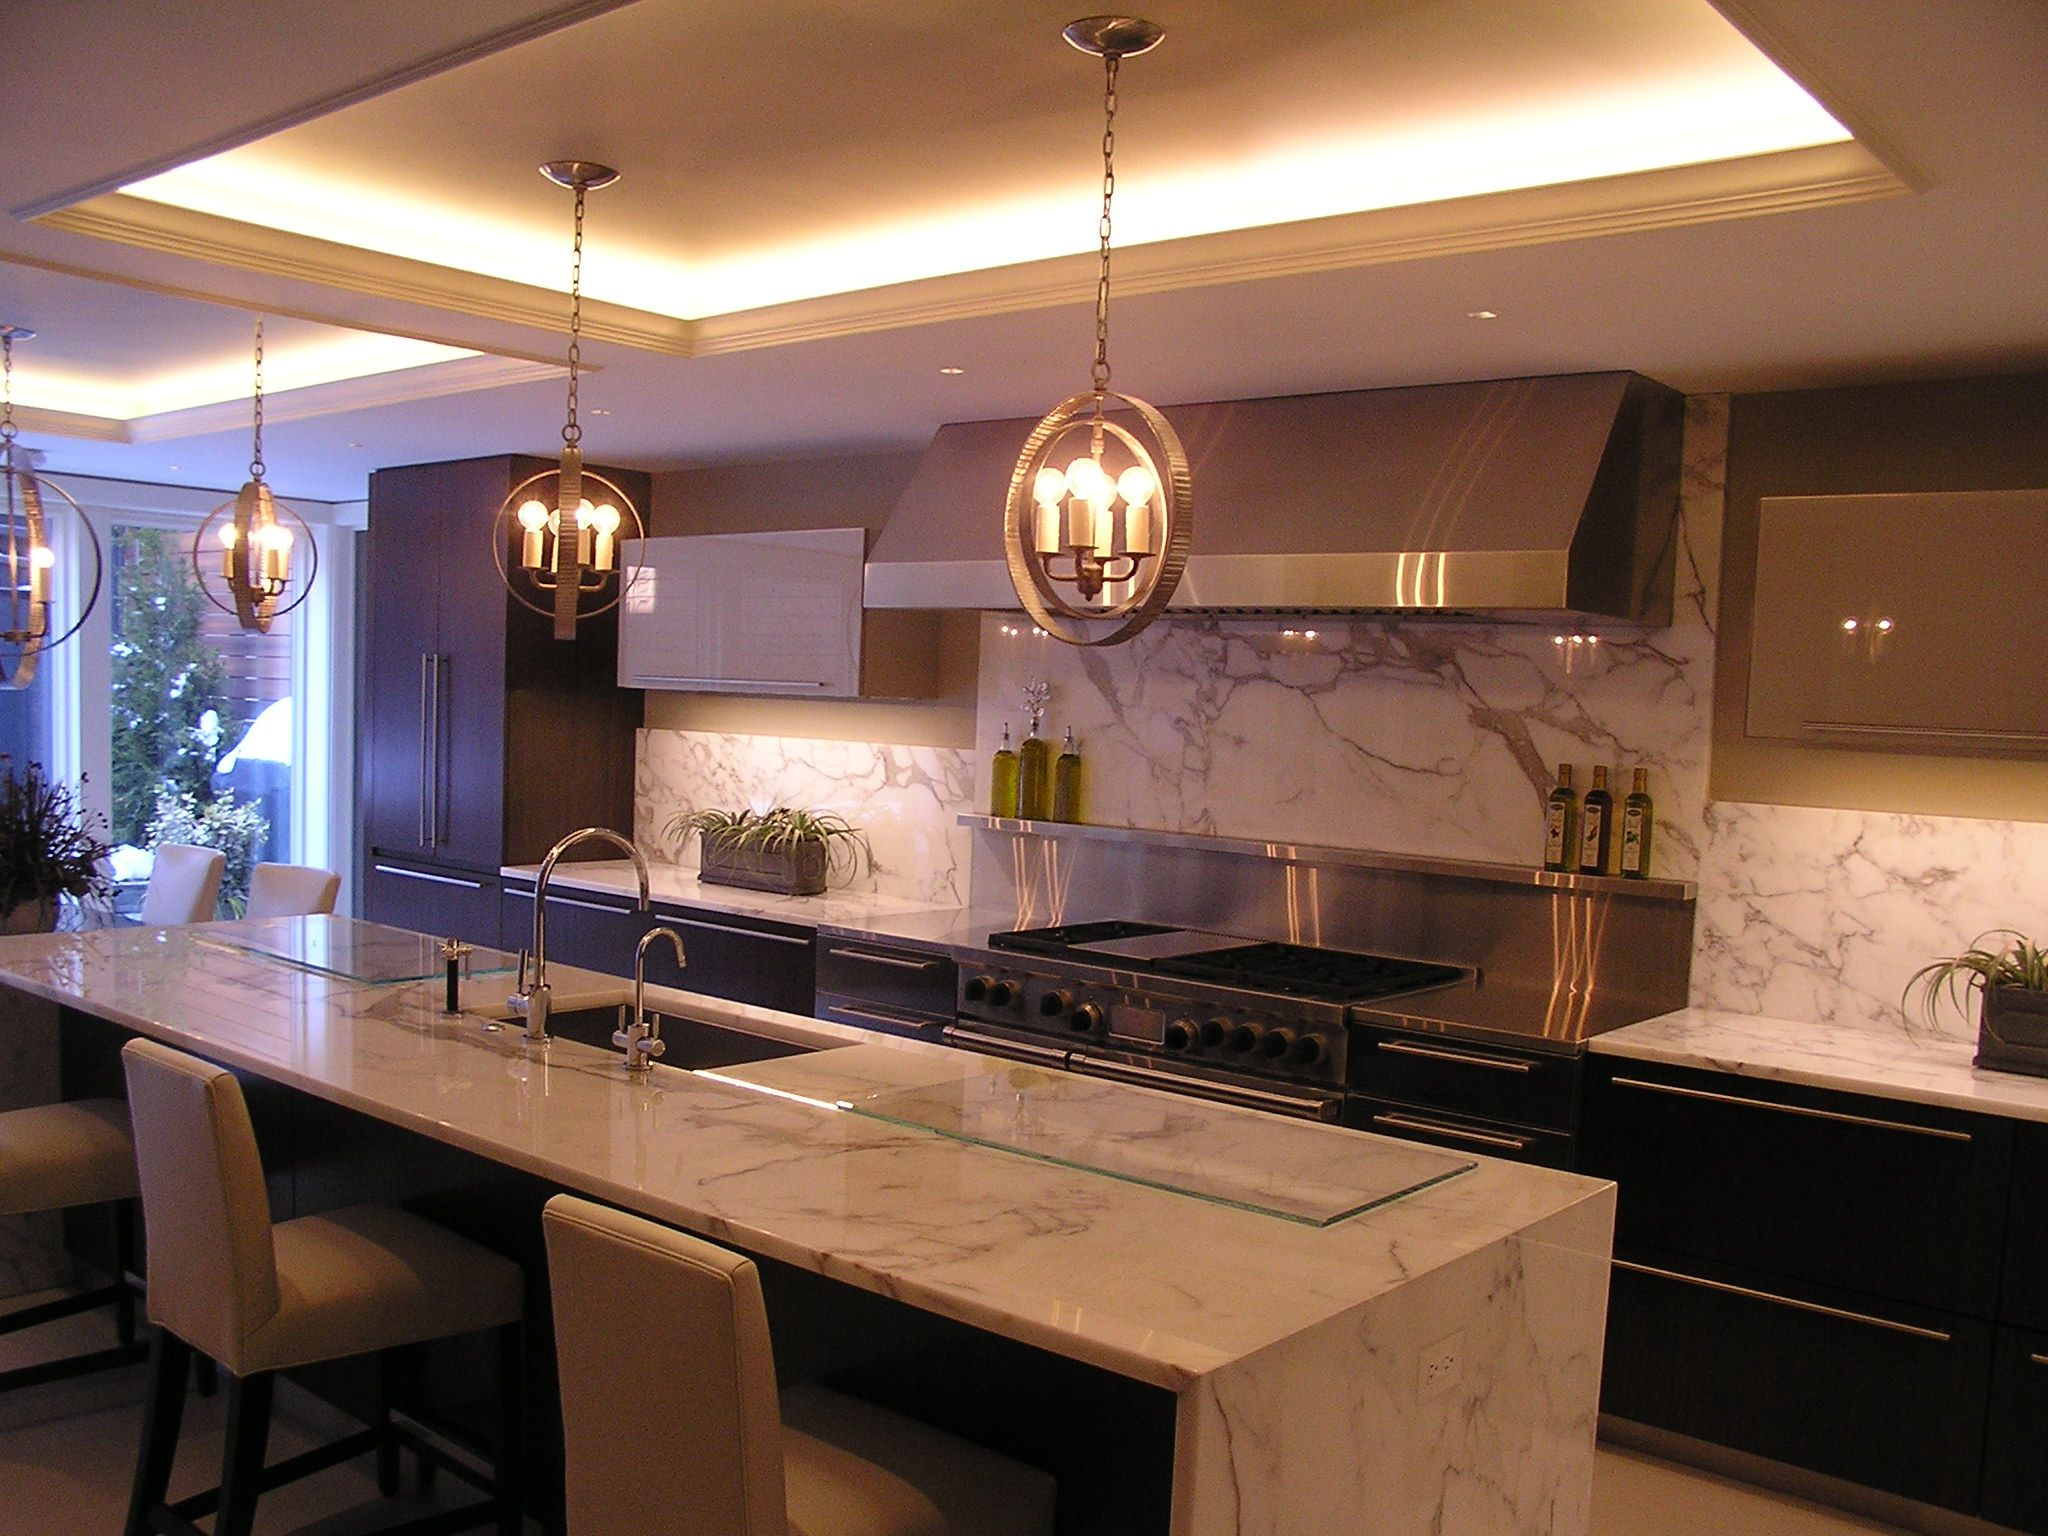 Soffit Lighting in Kitchen  Lowes Moreno Valley. Soffit Lighting in Kitchen  Lowes Moreno Valley   Kitchen Design